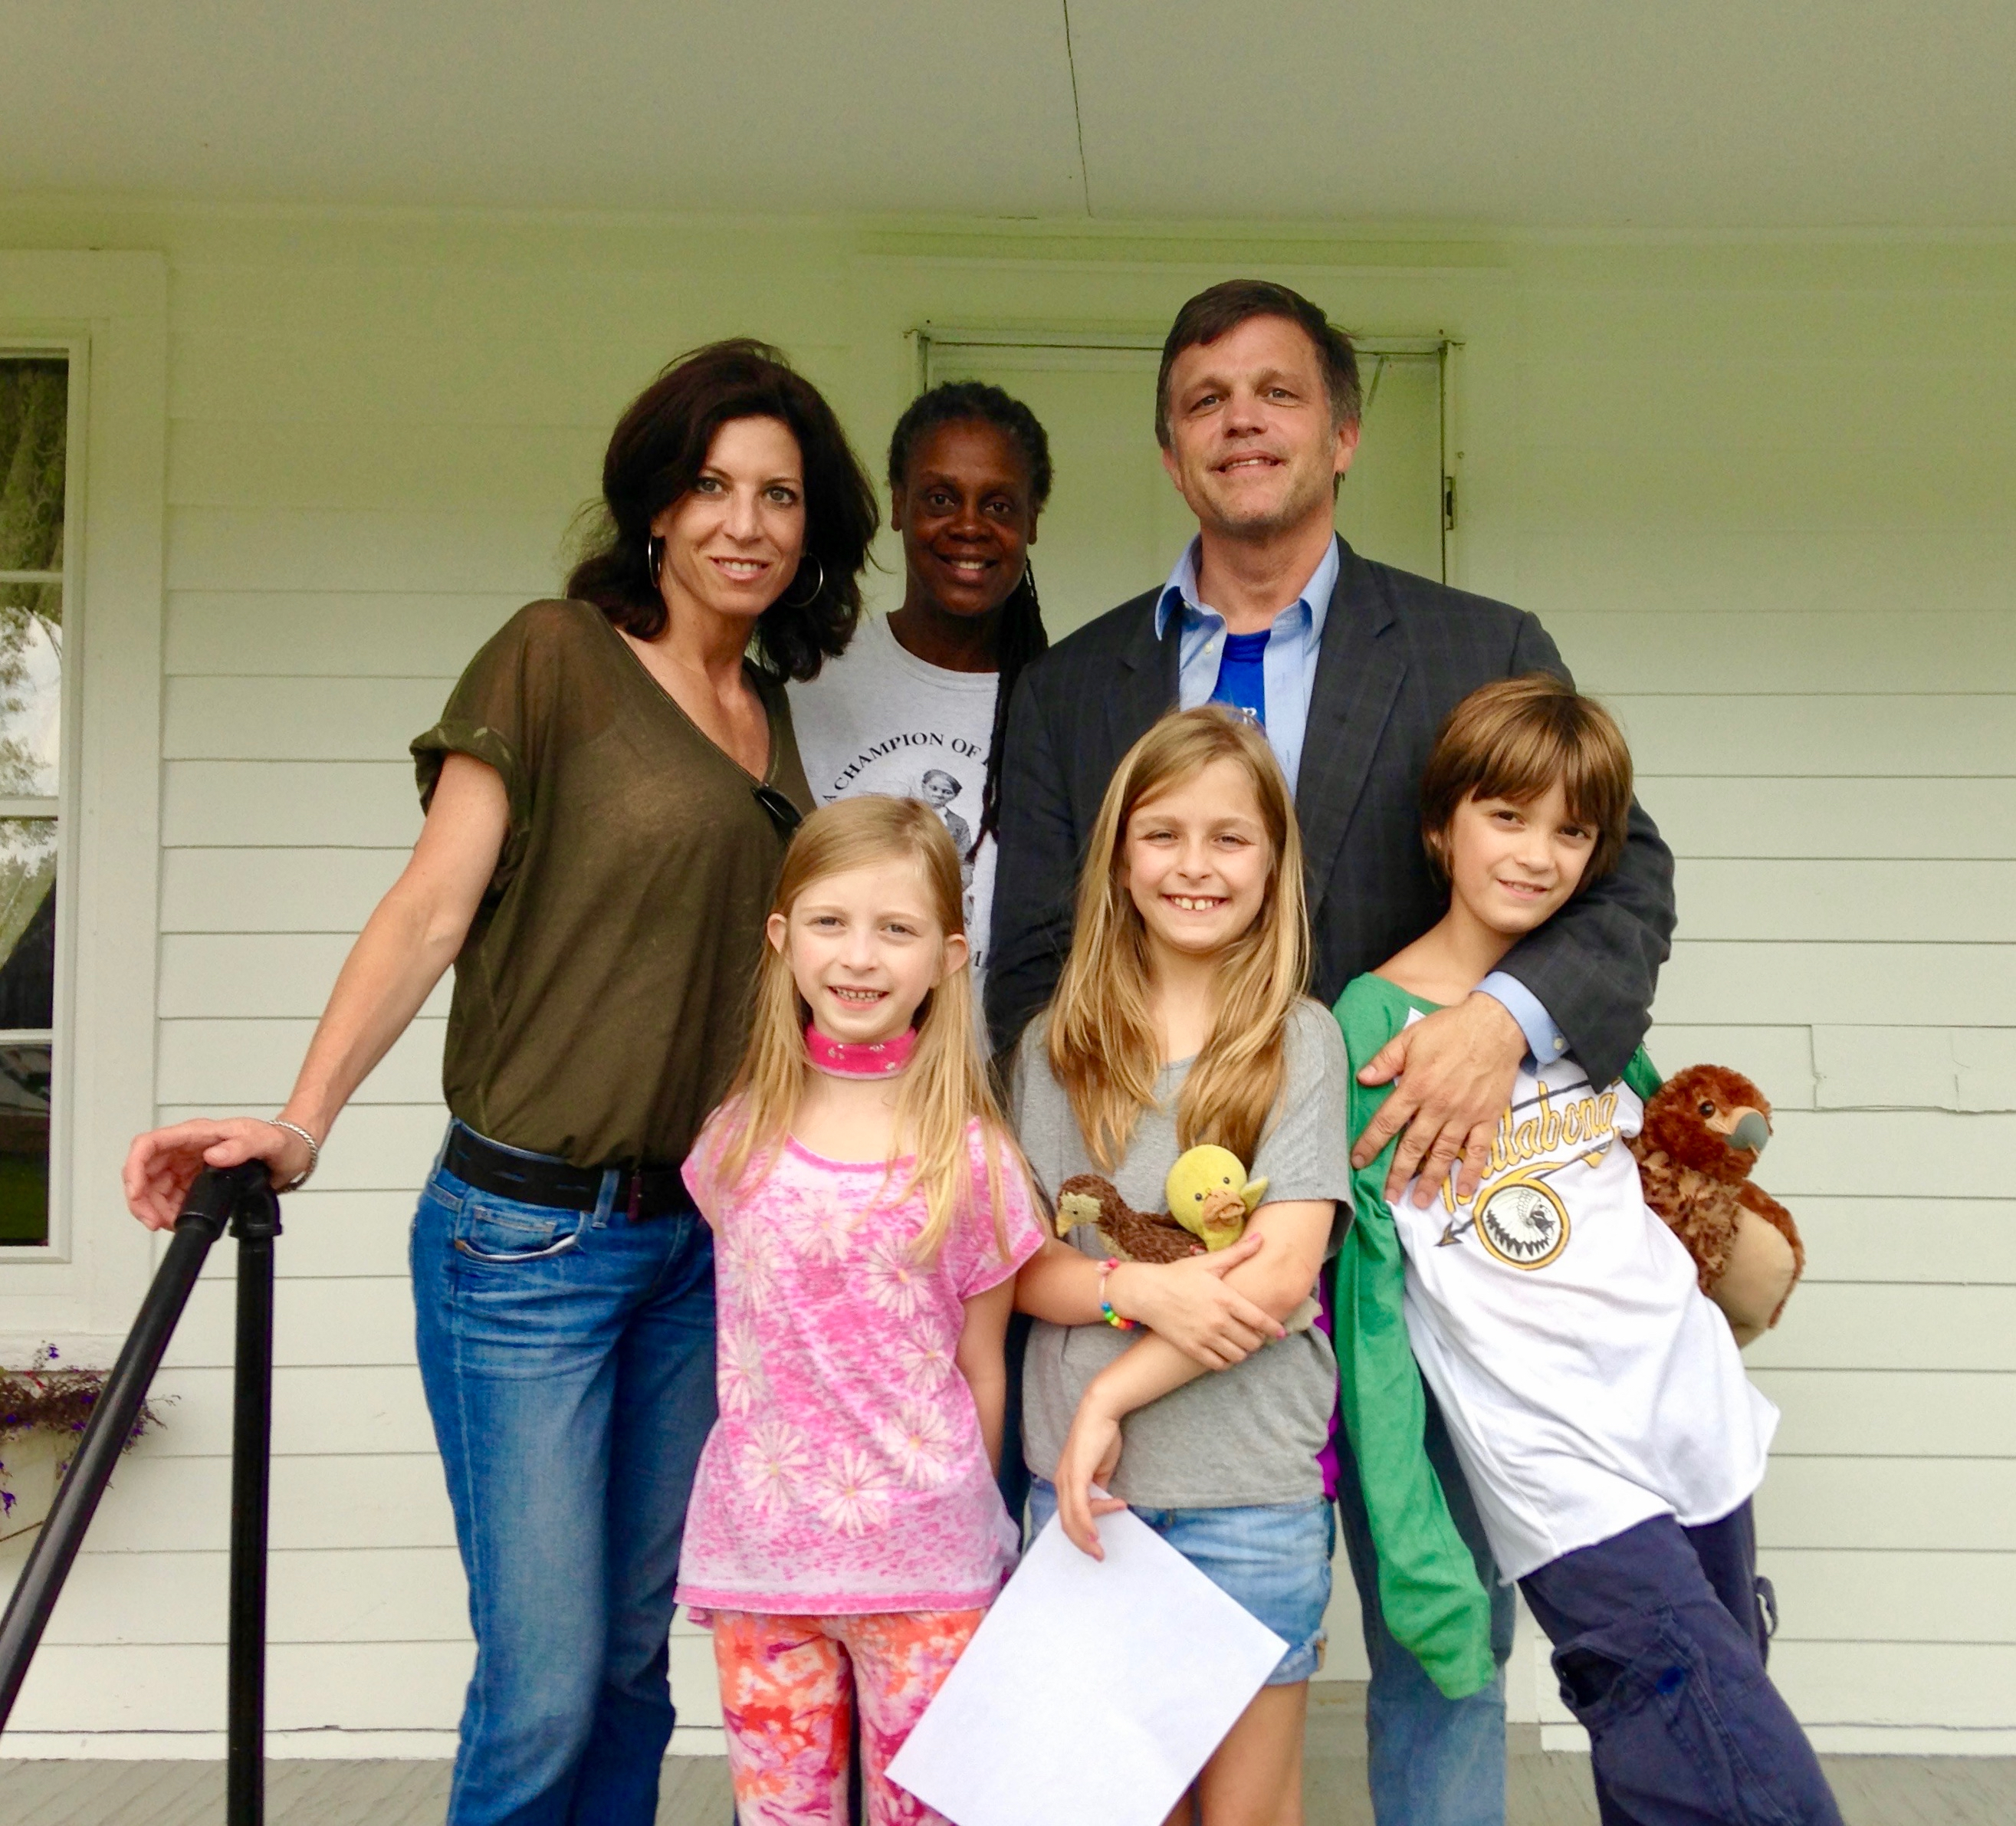 Douglas Brinkley and his family